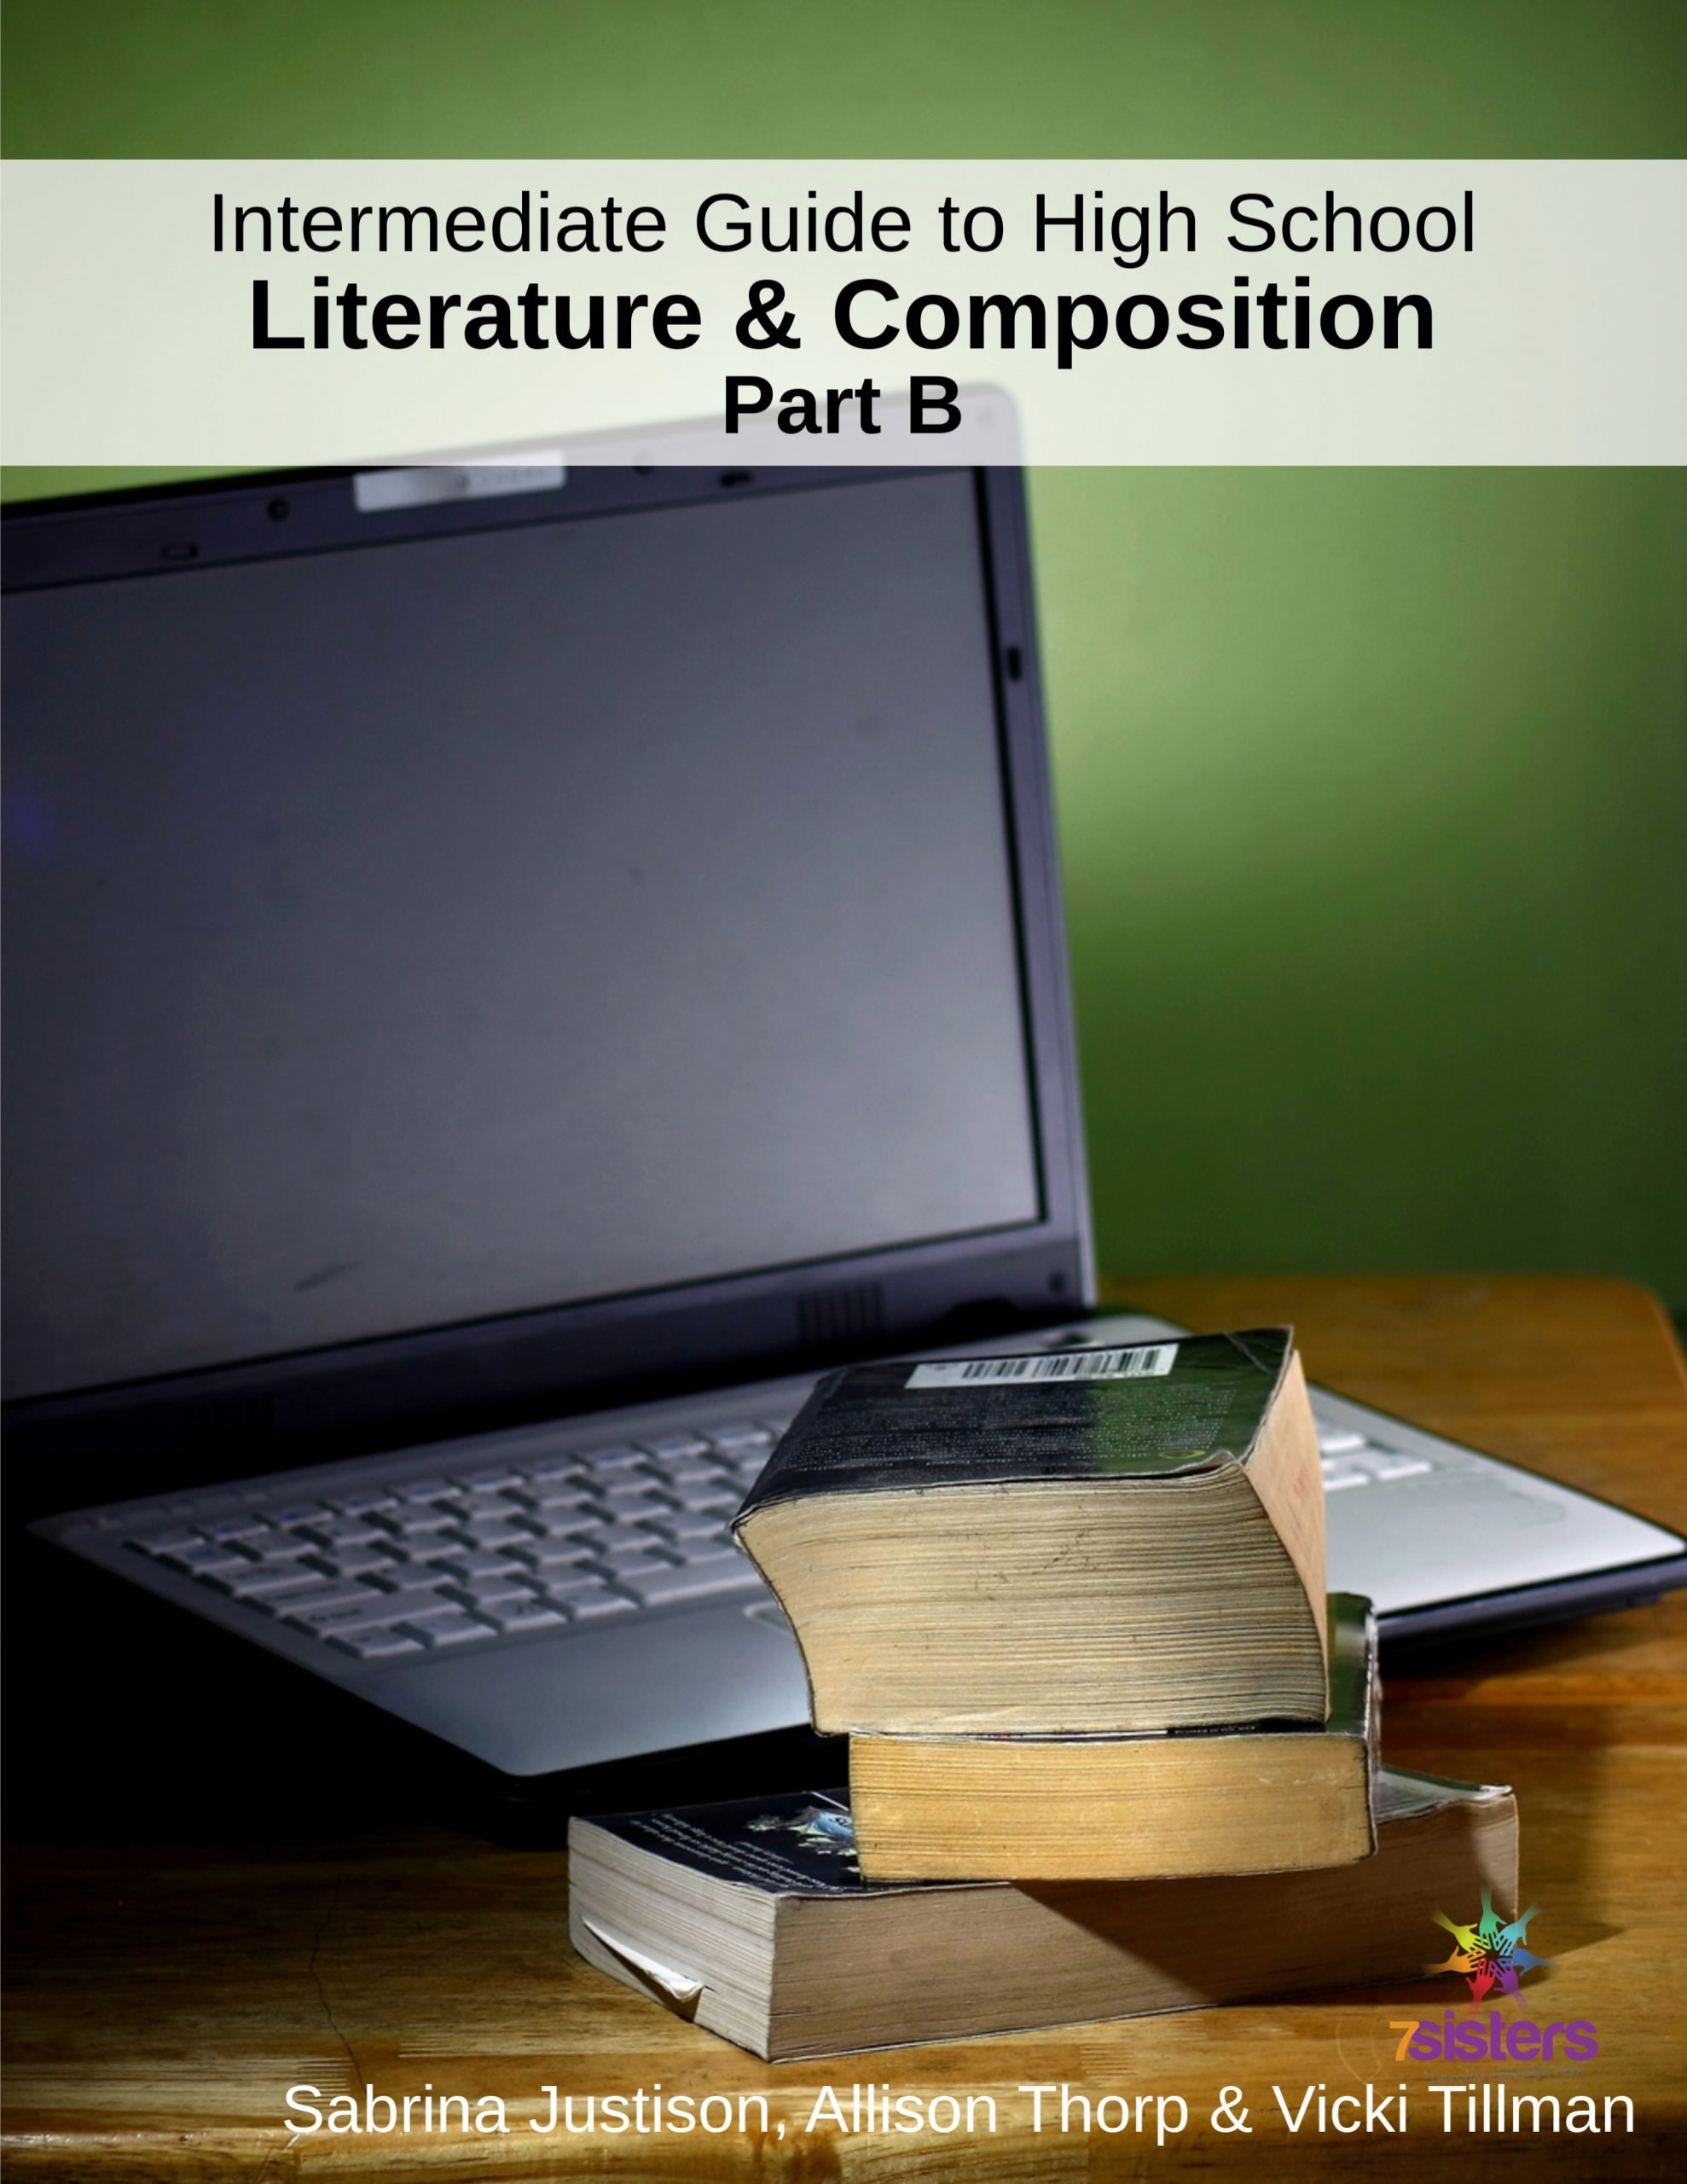 Intermediate Guide to High School Literature and Composition Part B